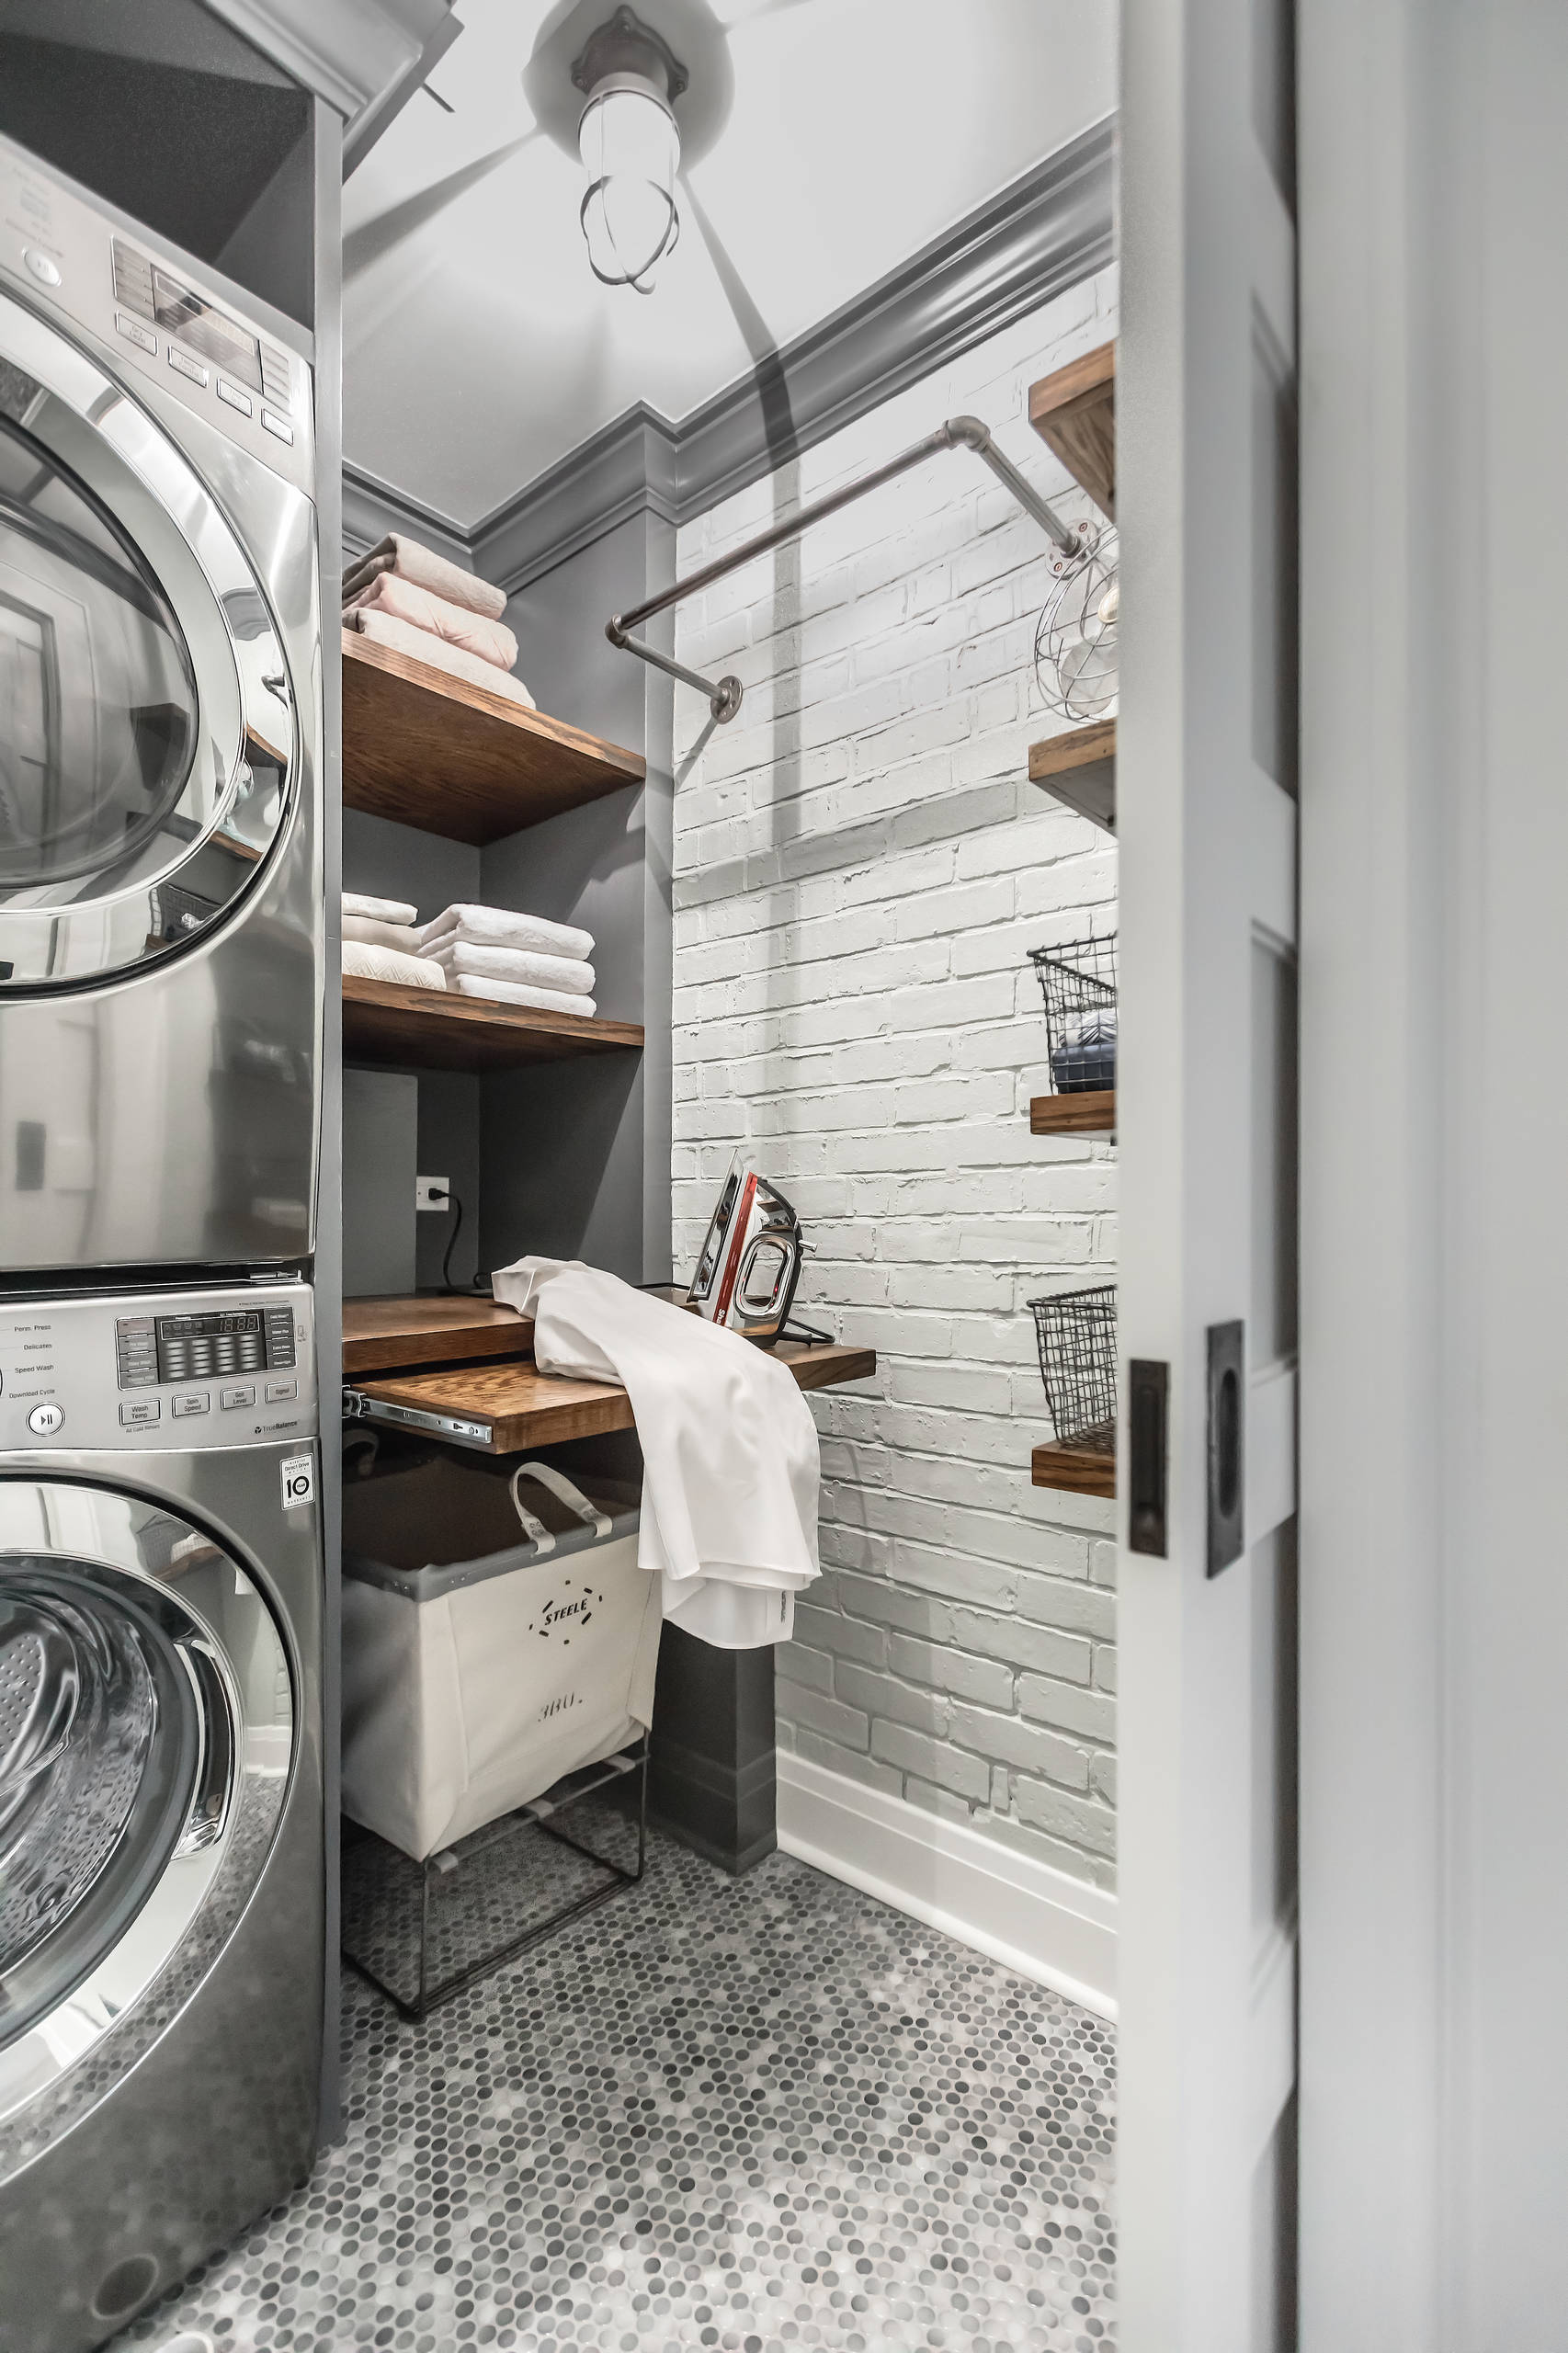 75 Beautiful Laundry Room Pictures Ideas February 2021 Houzz